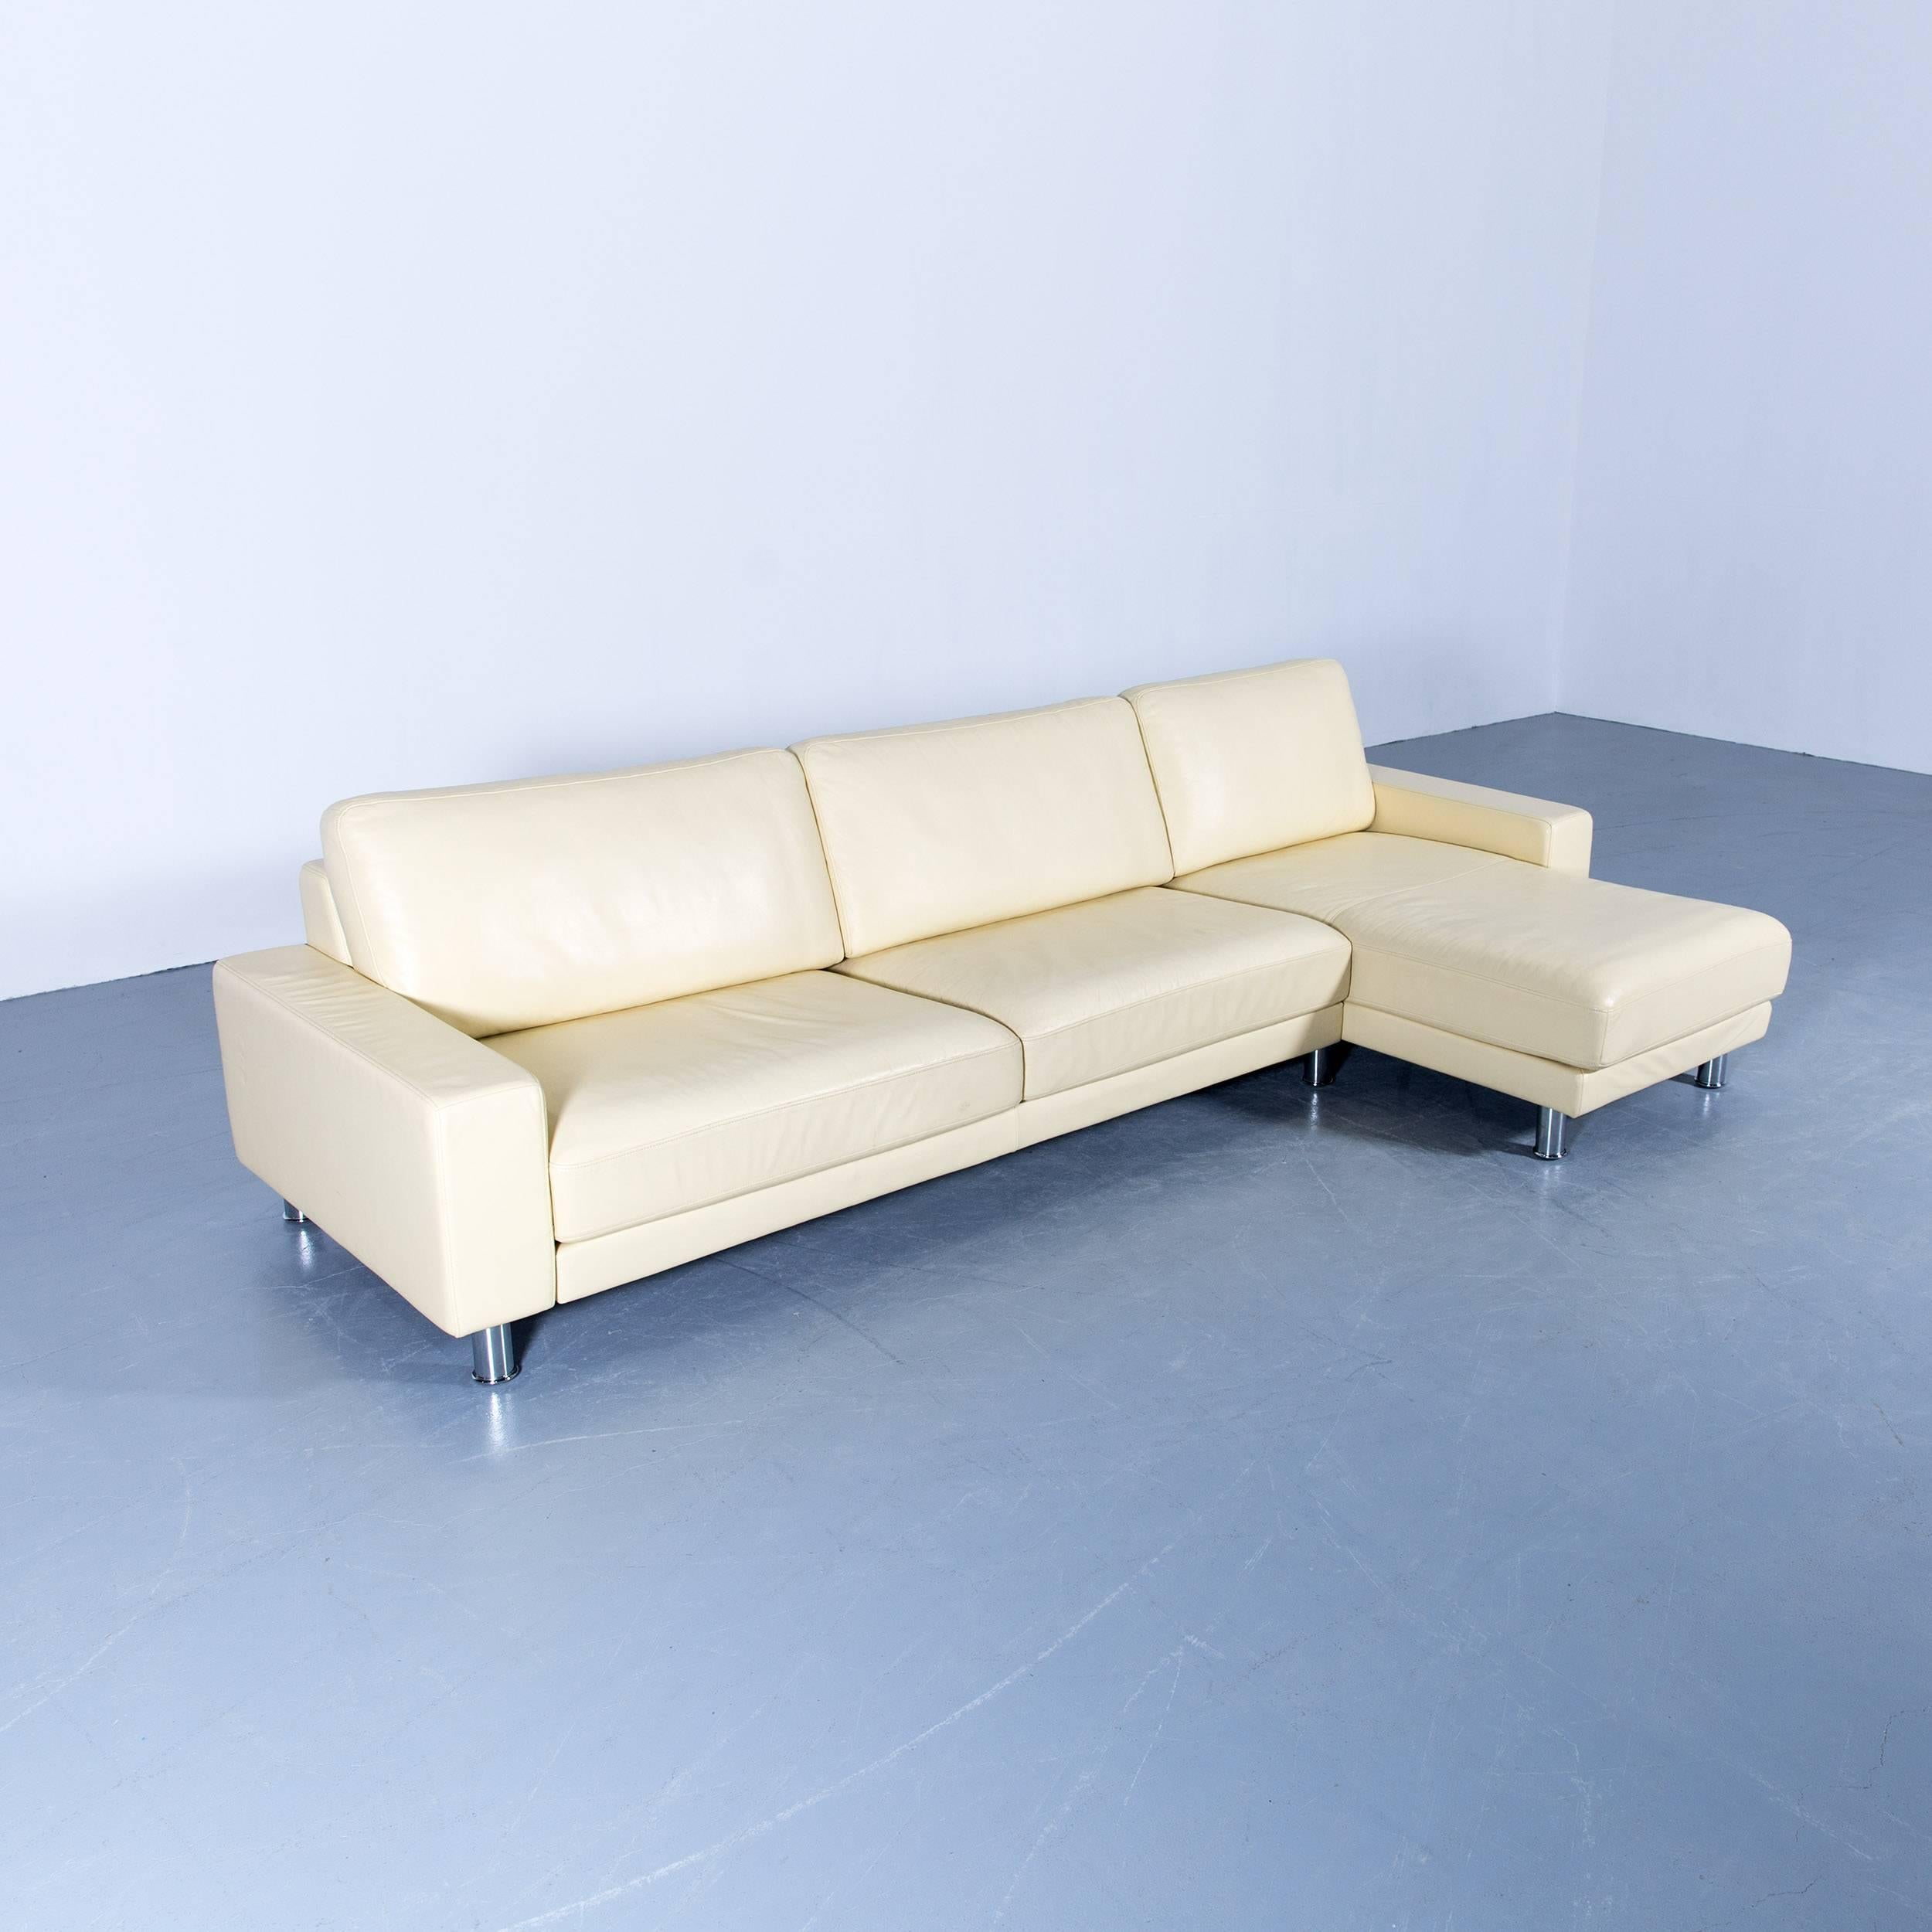 Endearing Eckcouch Leder Gallery Of Best Rolf Benz Designer Corner Sofa Leather